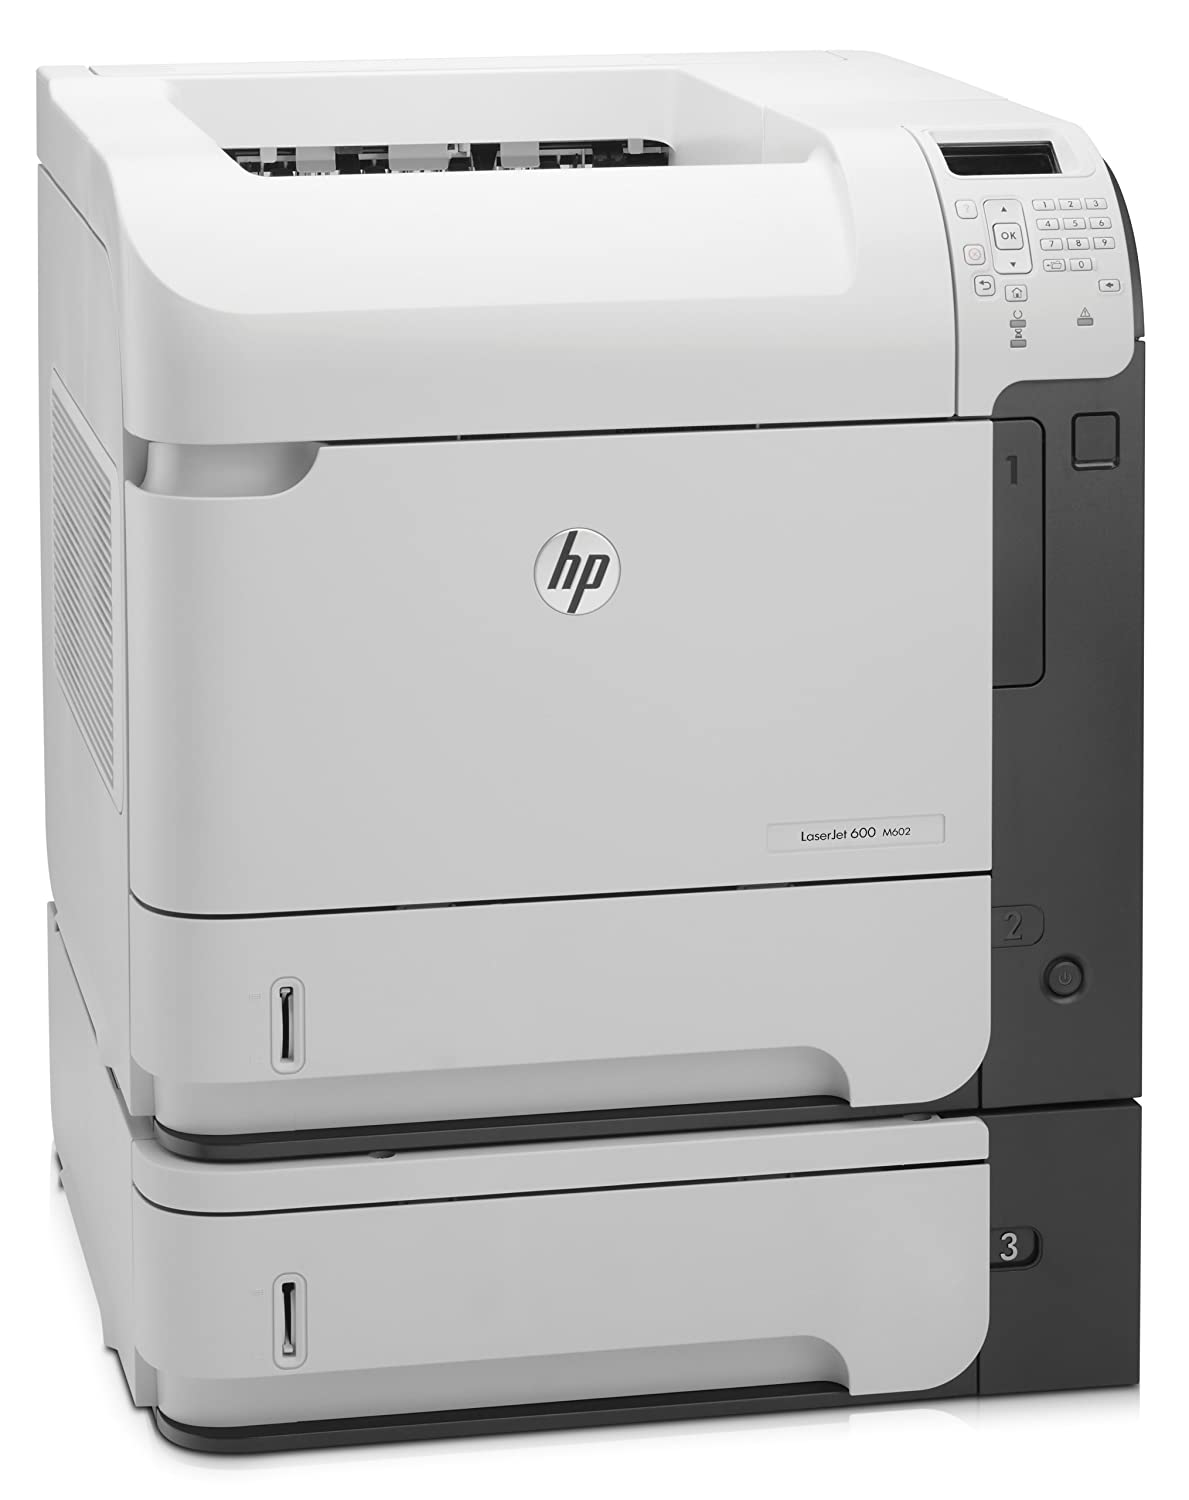 DRIVERS UPDATE: HP LASERJET 600 M602 PRINTER